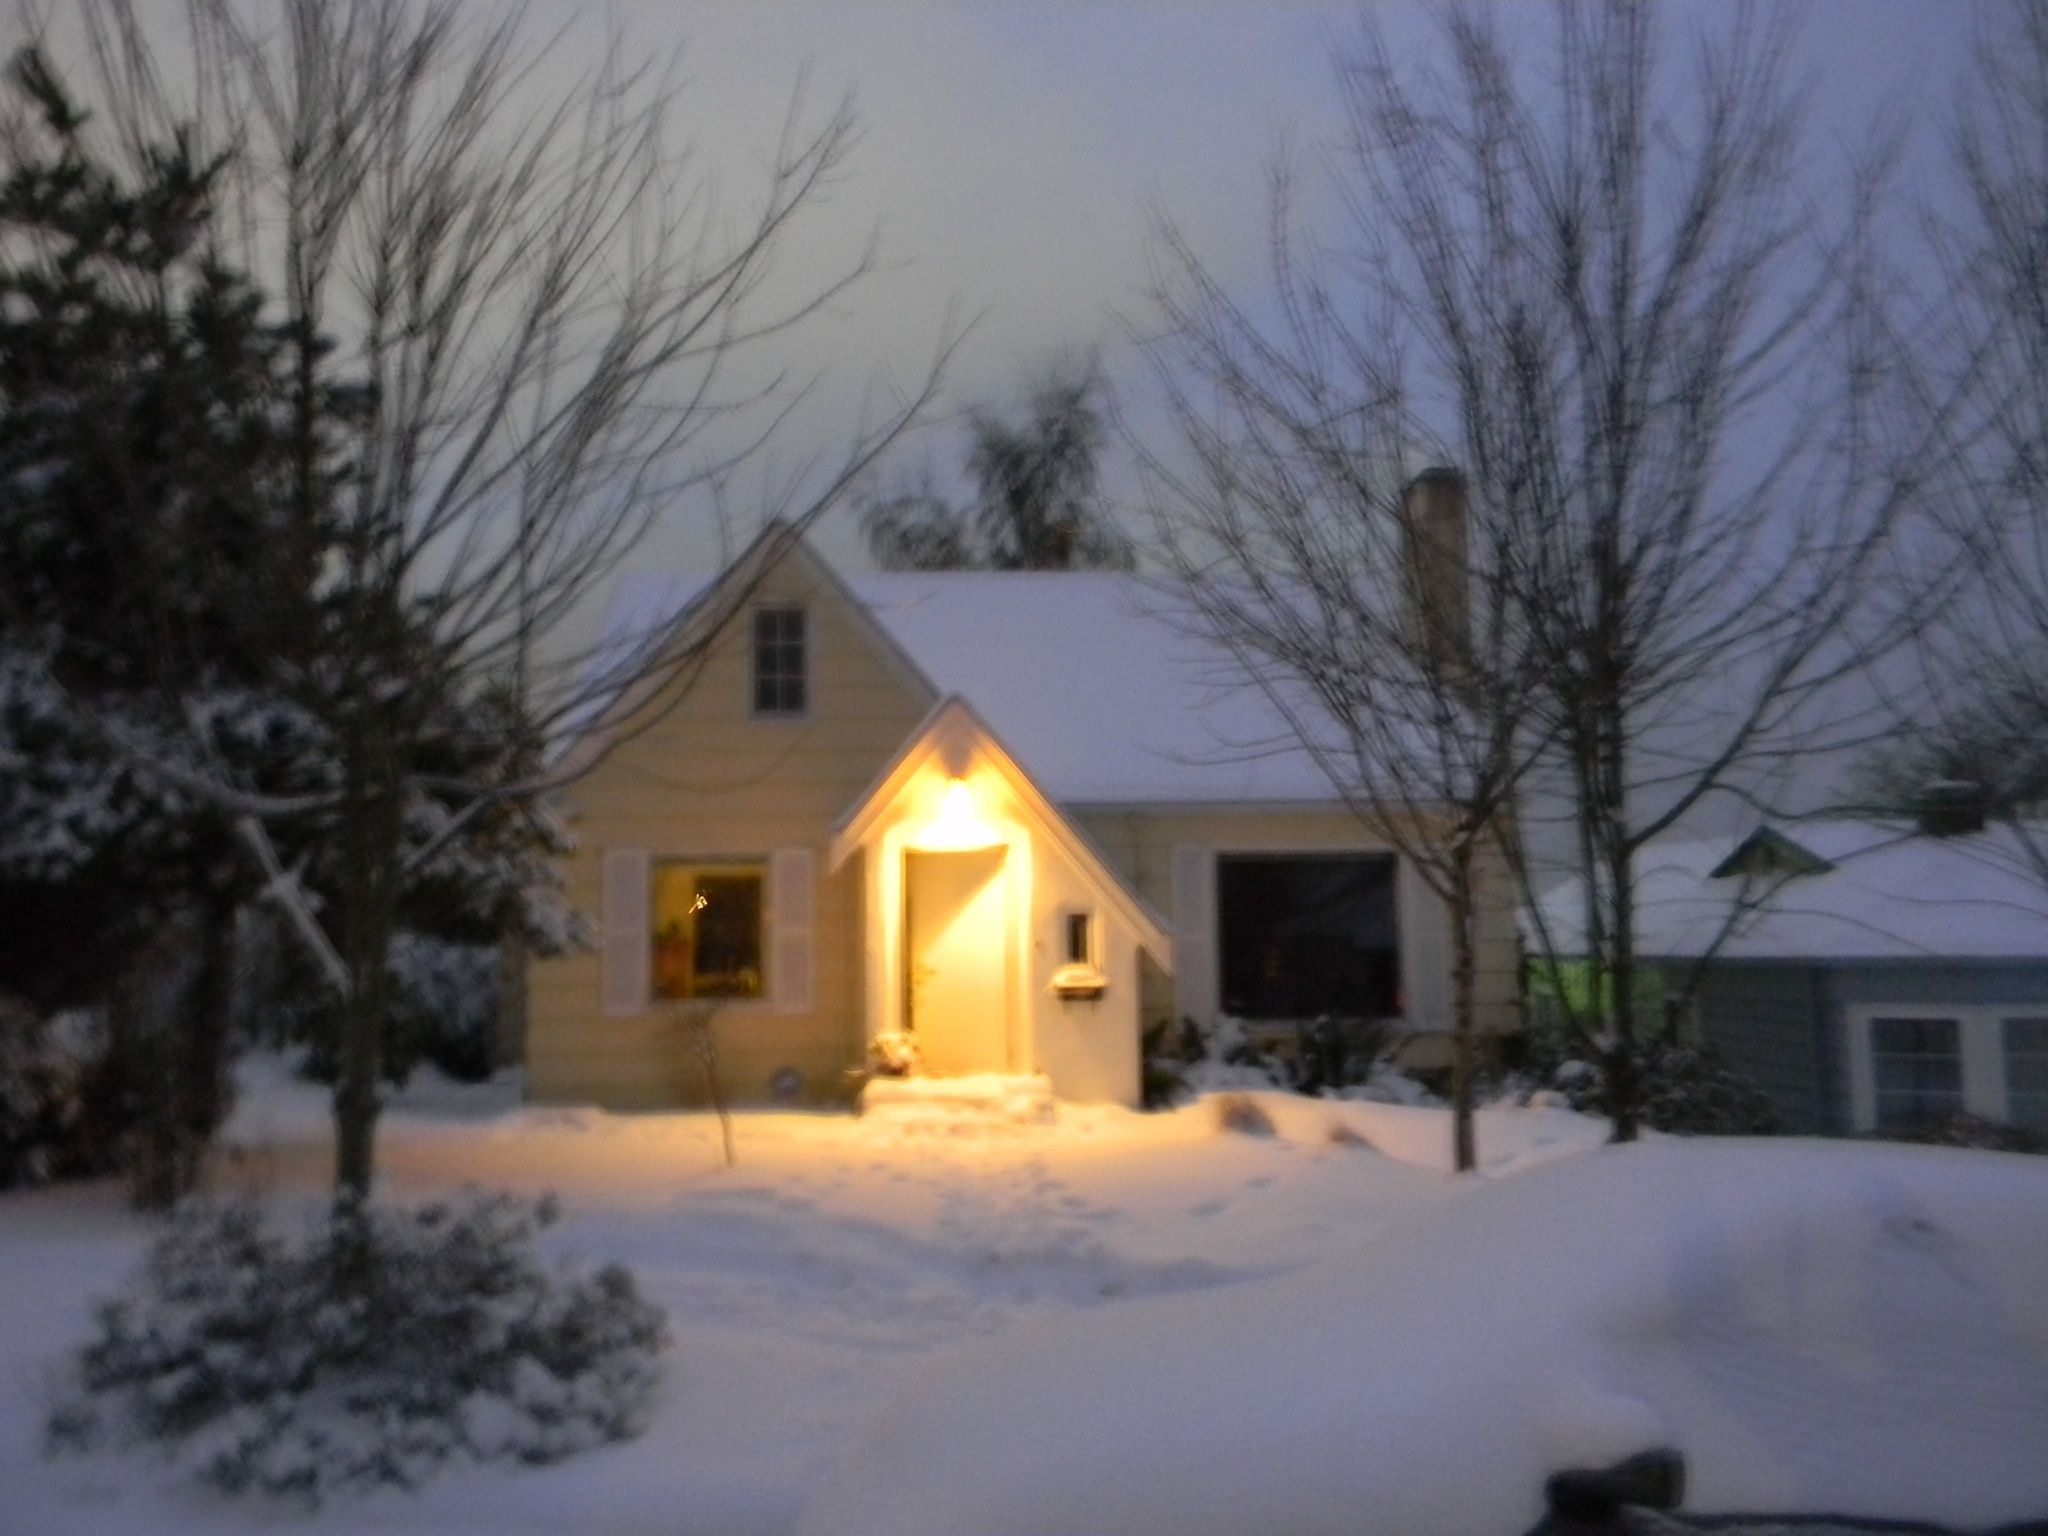 Winter wonderland 2011 bremerton WA our first home and snow fall